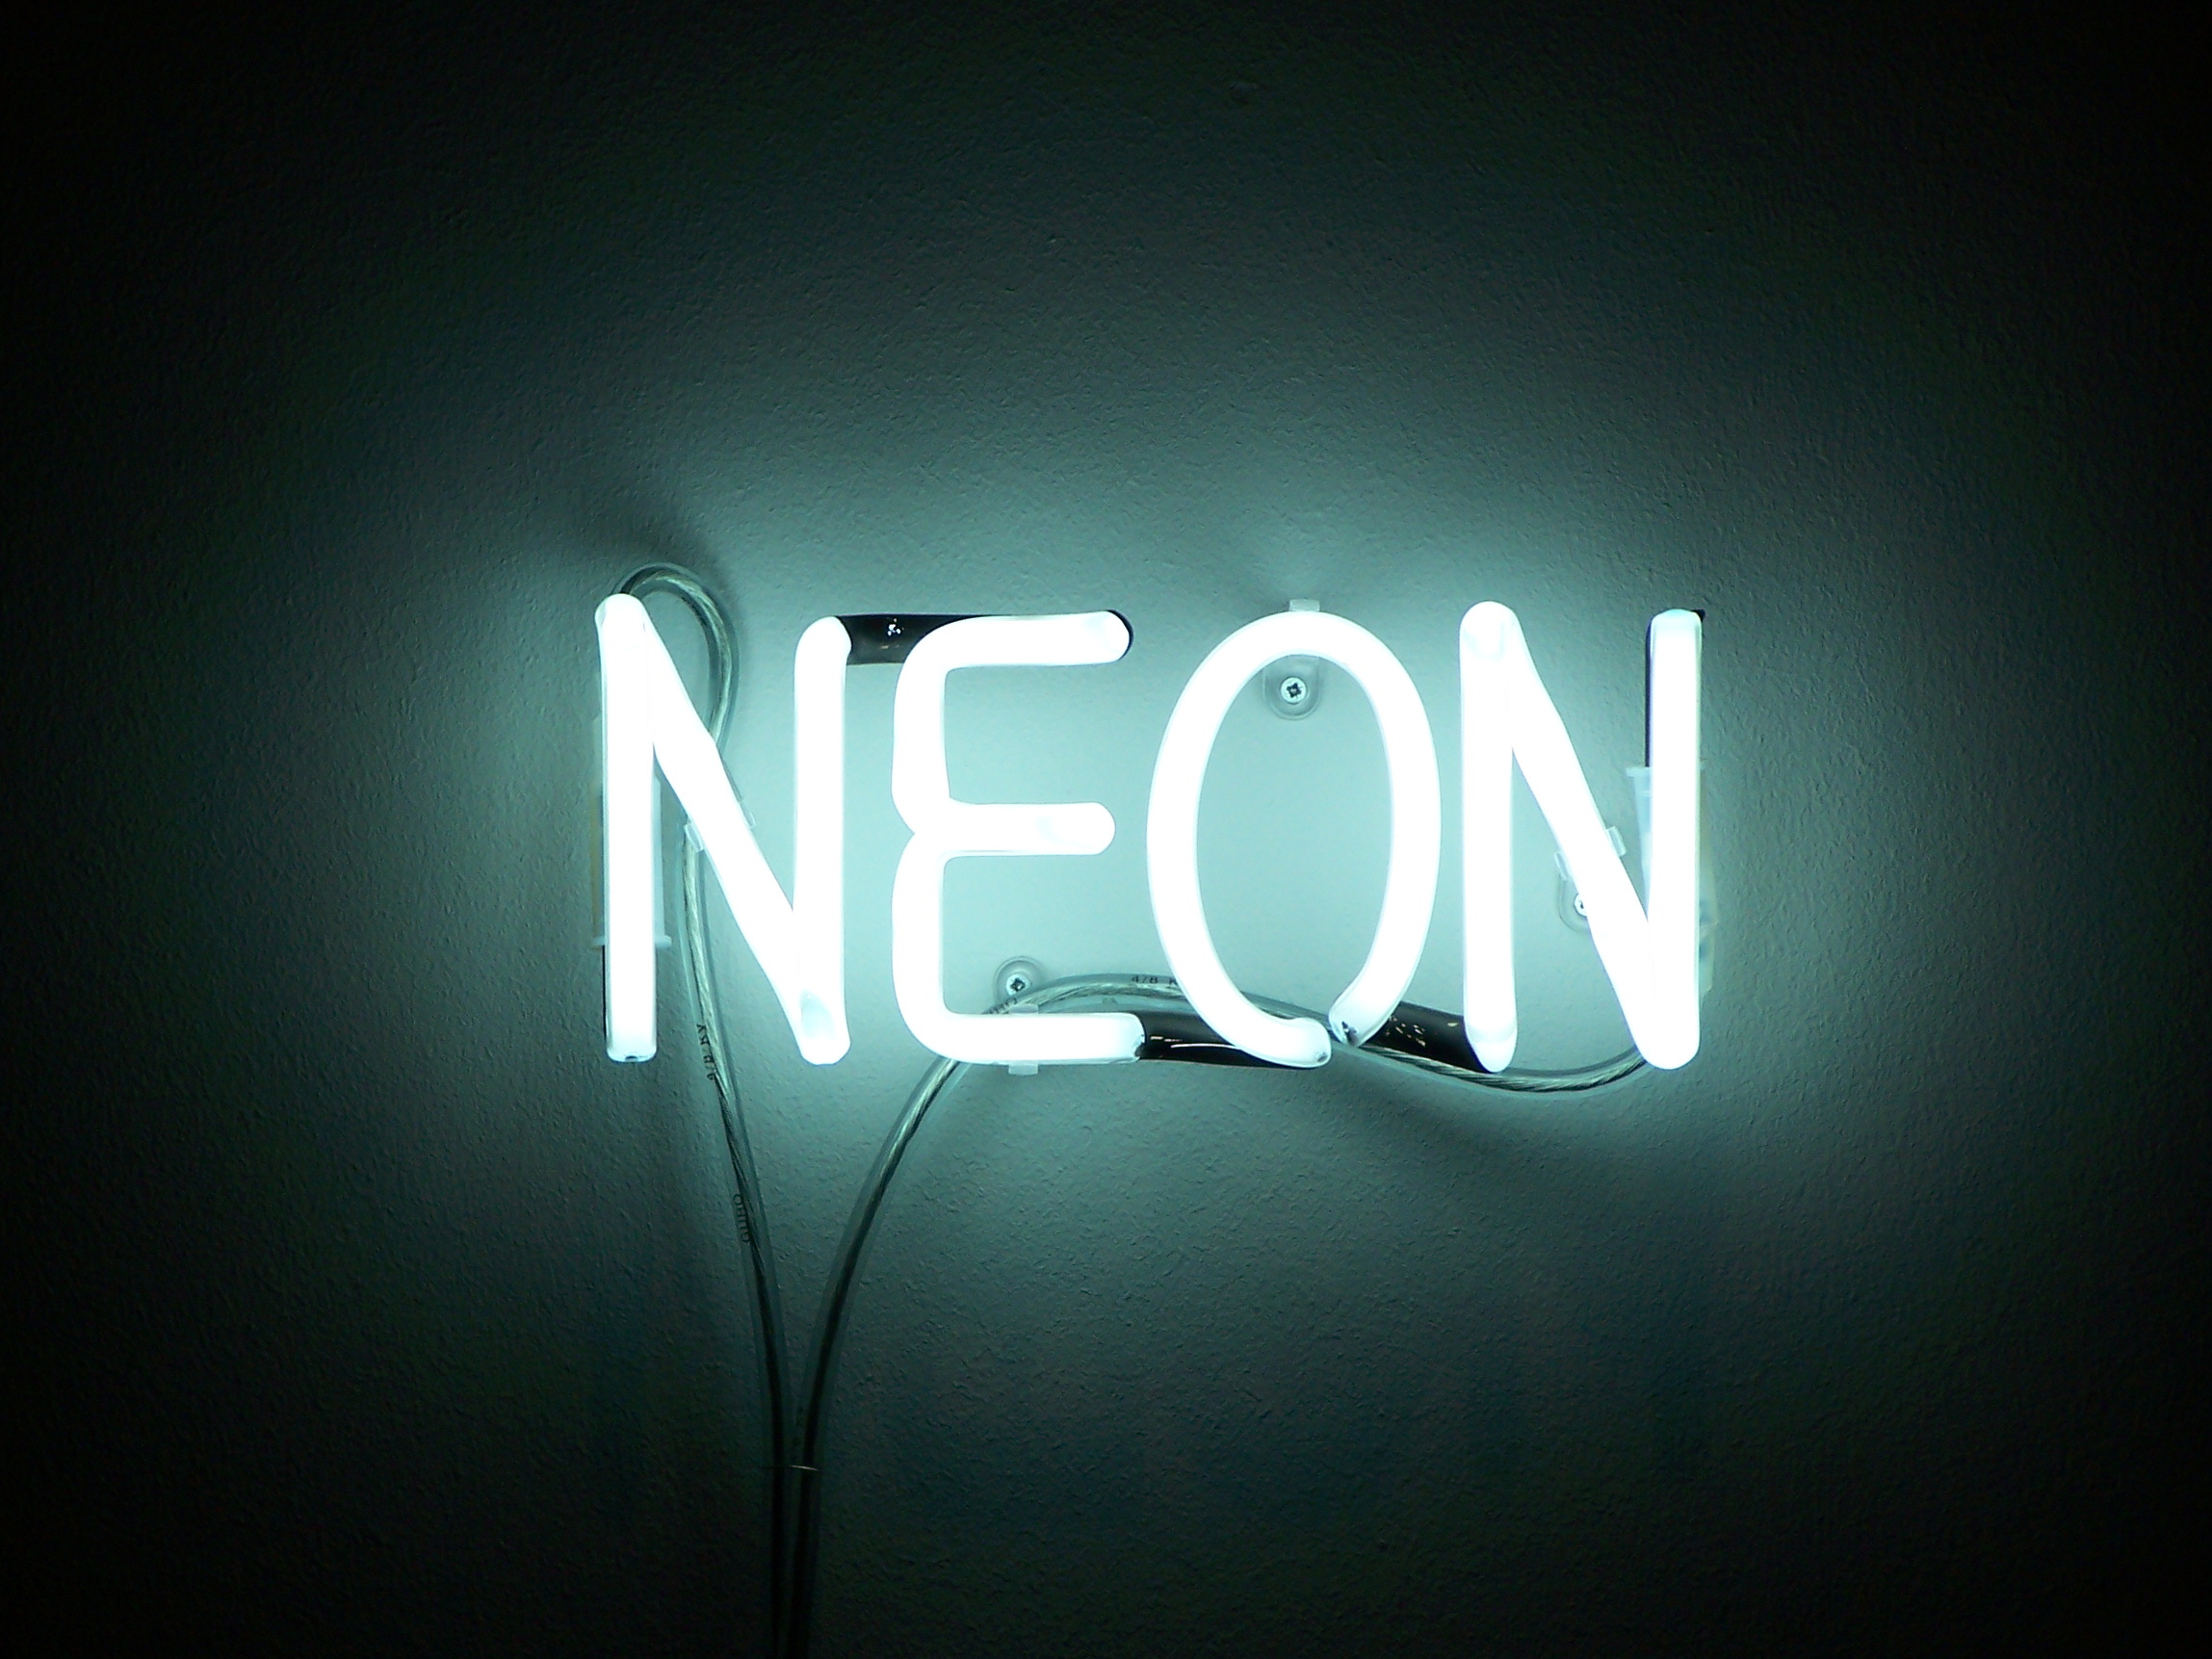 Nice Images Collection: Neon Desktop Wallpapers